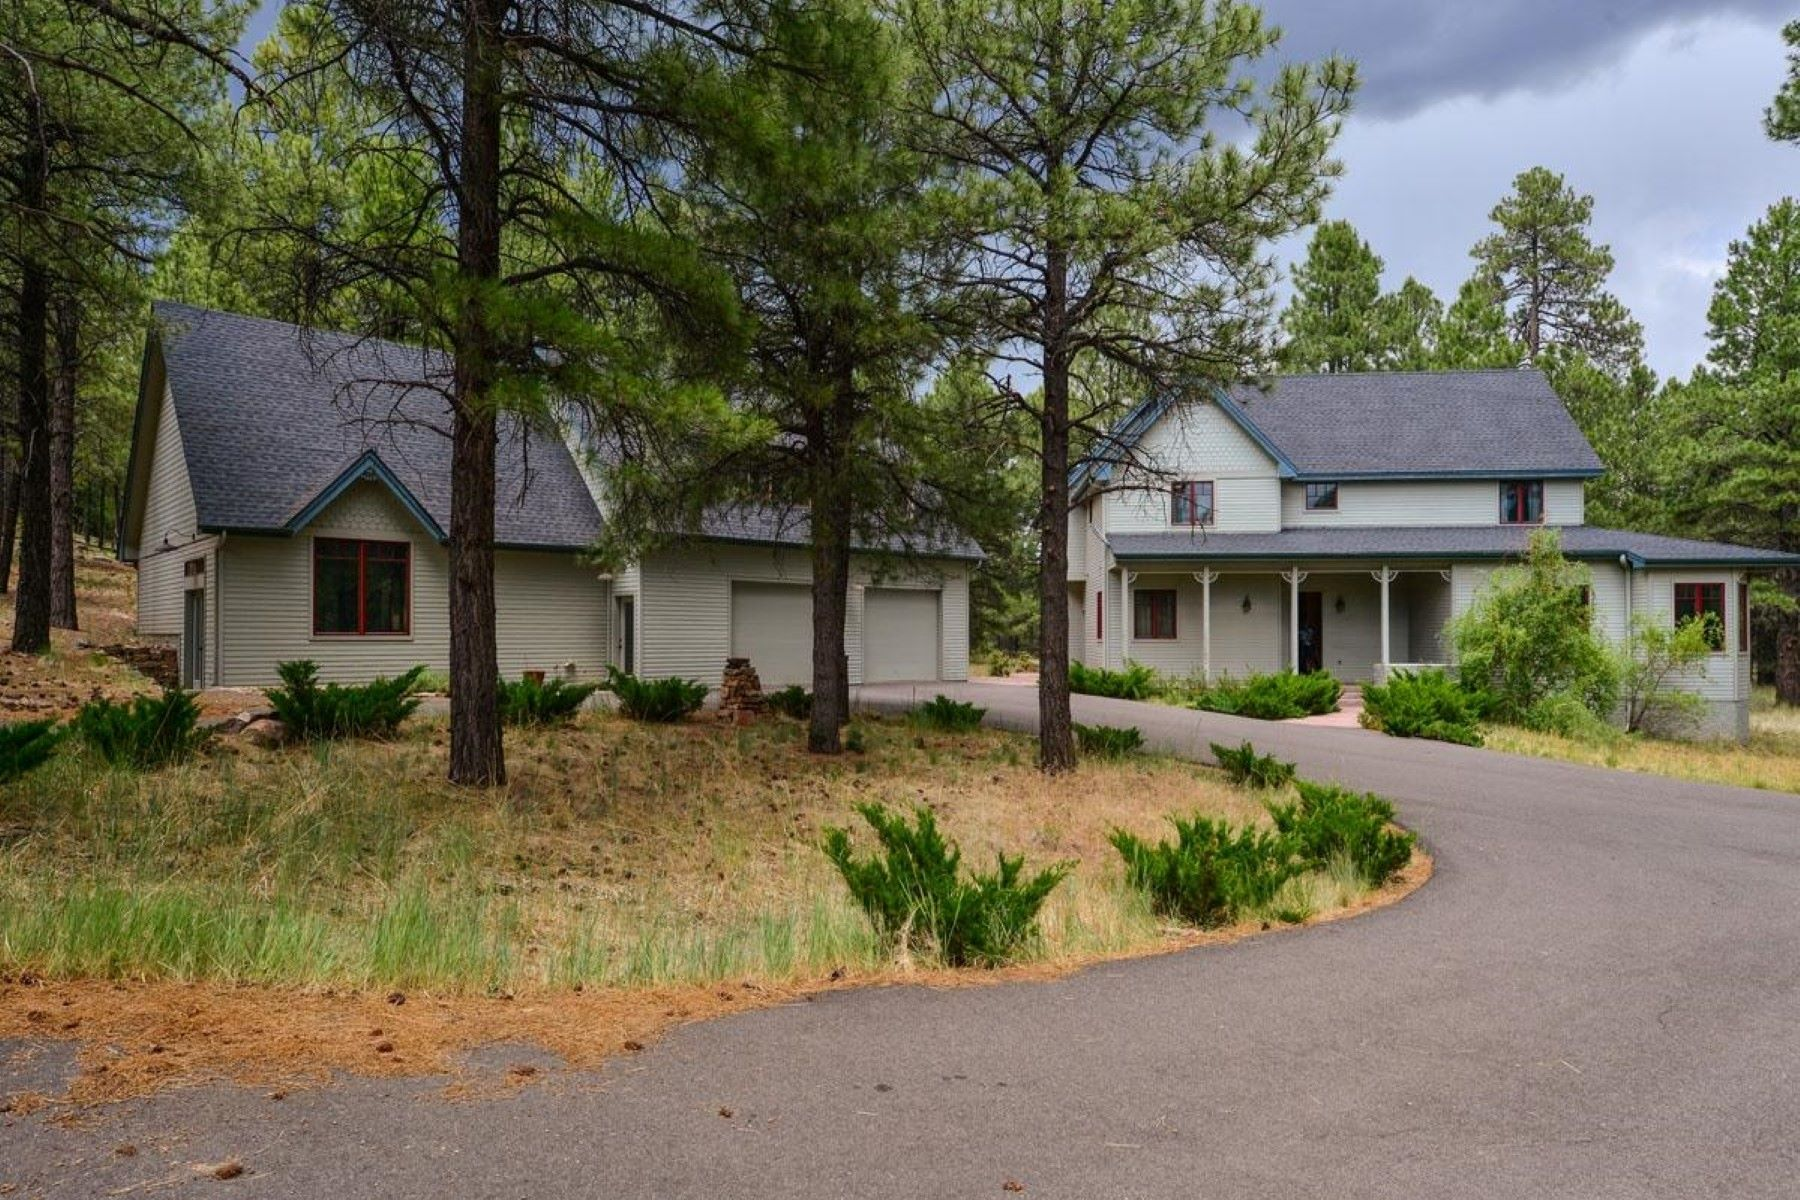 Single Family Home for Sale at Custom Ranch 2340 Constitution Blvd, Flagstaff, Arizona, 86005 United States